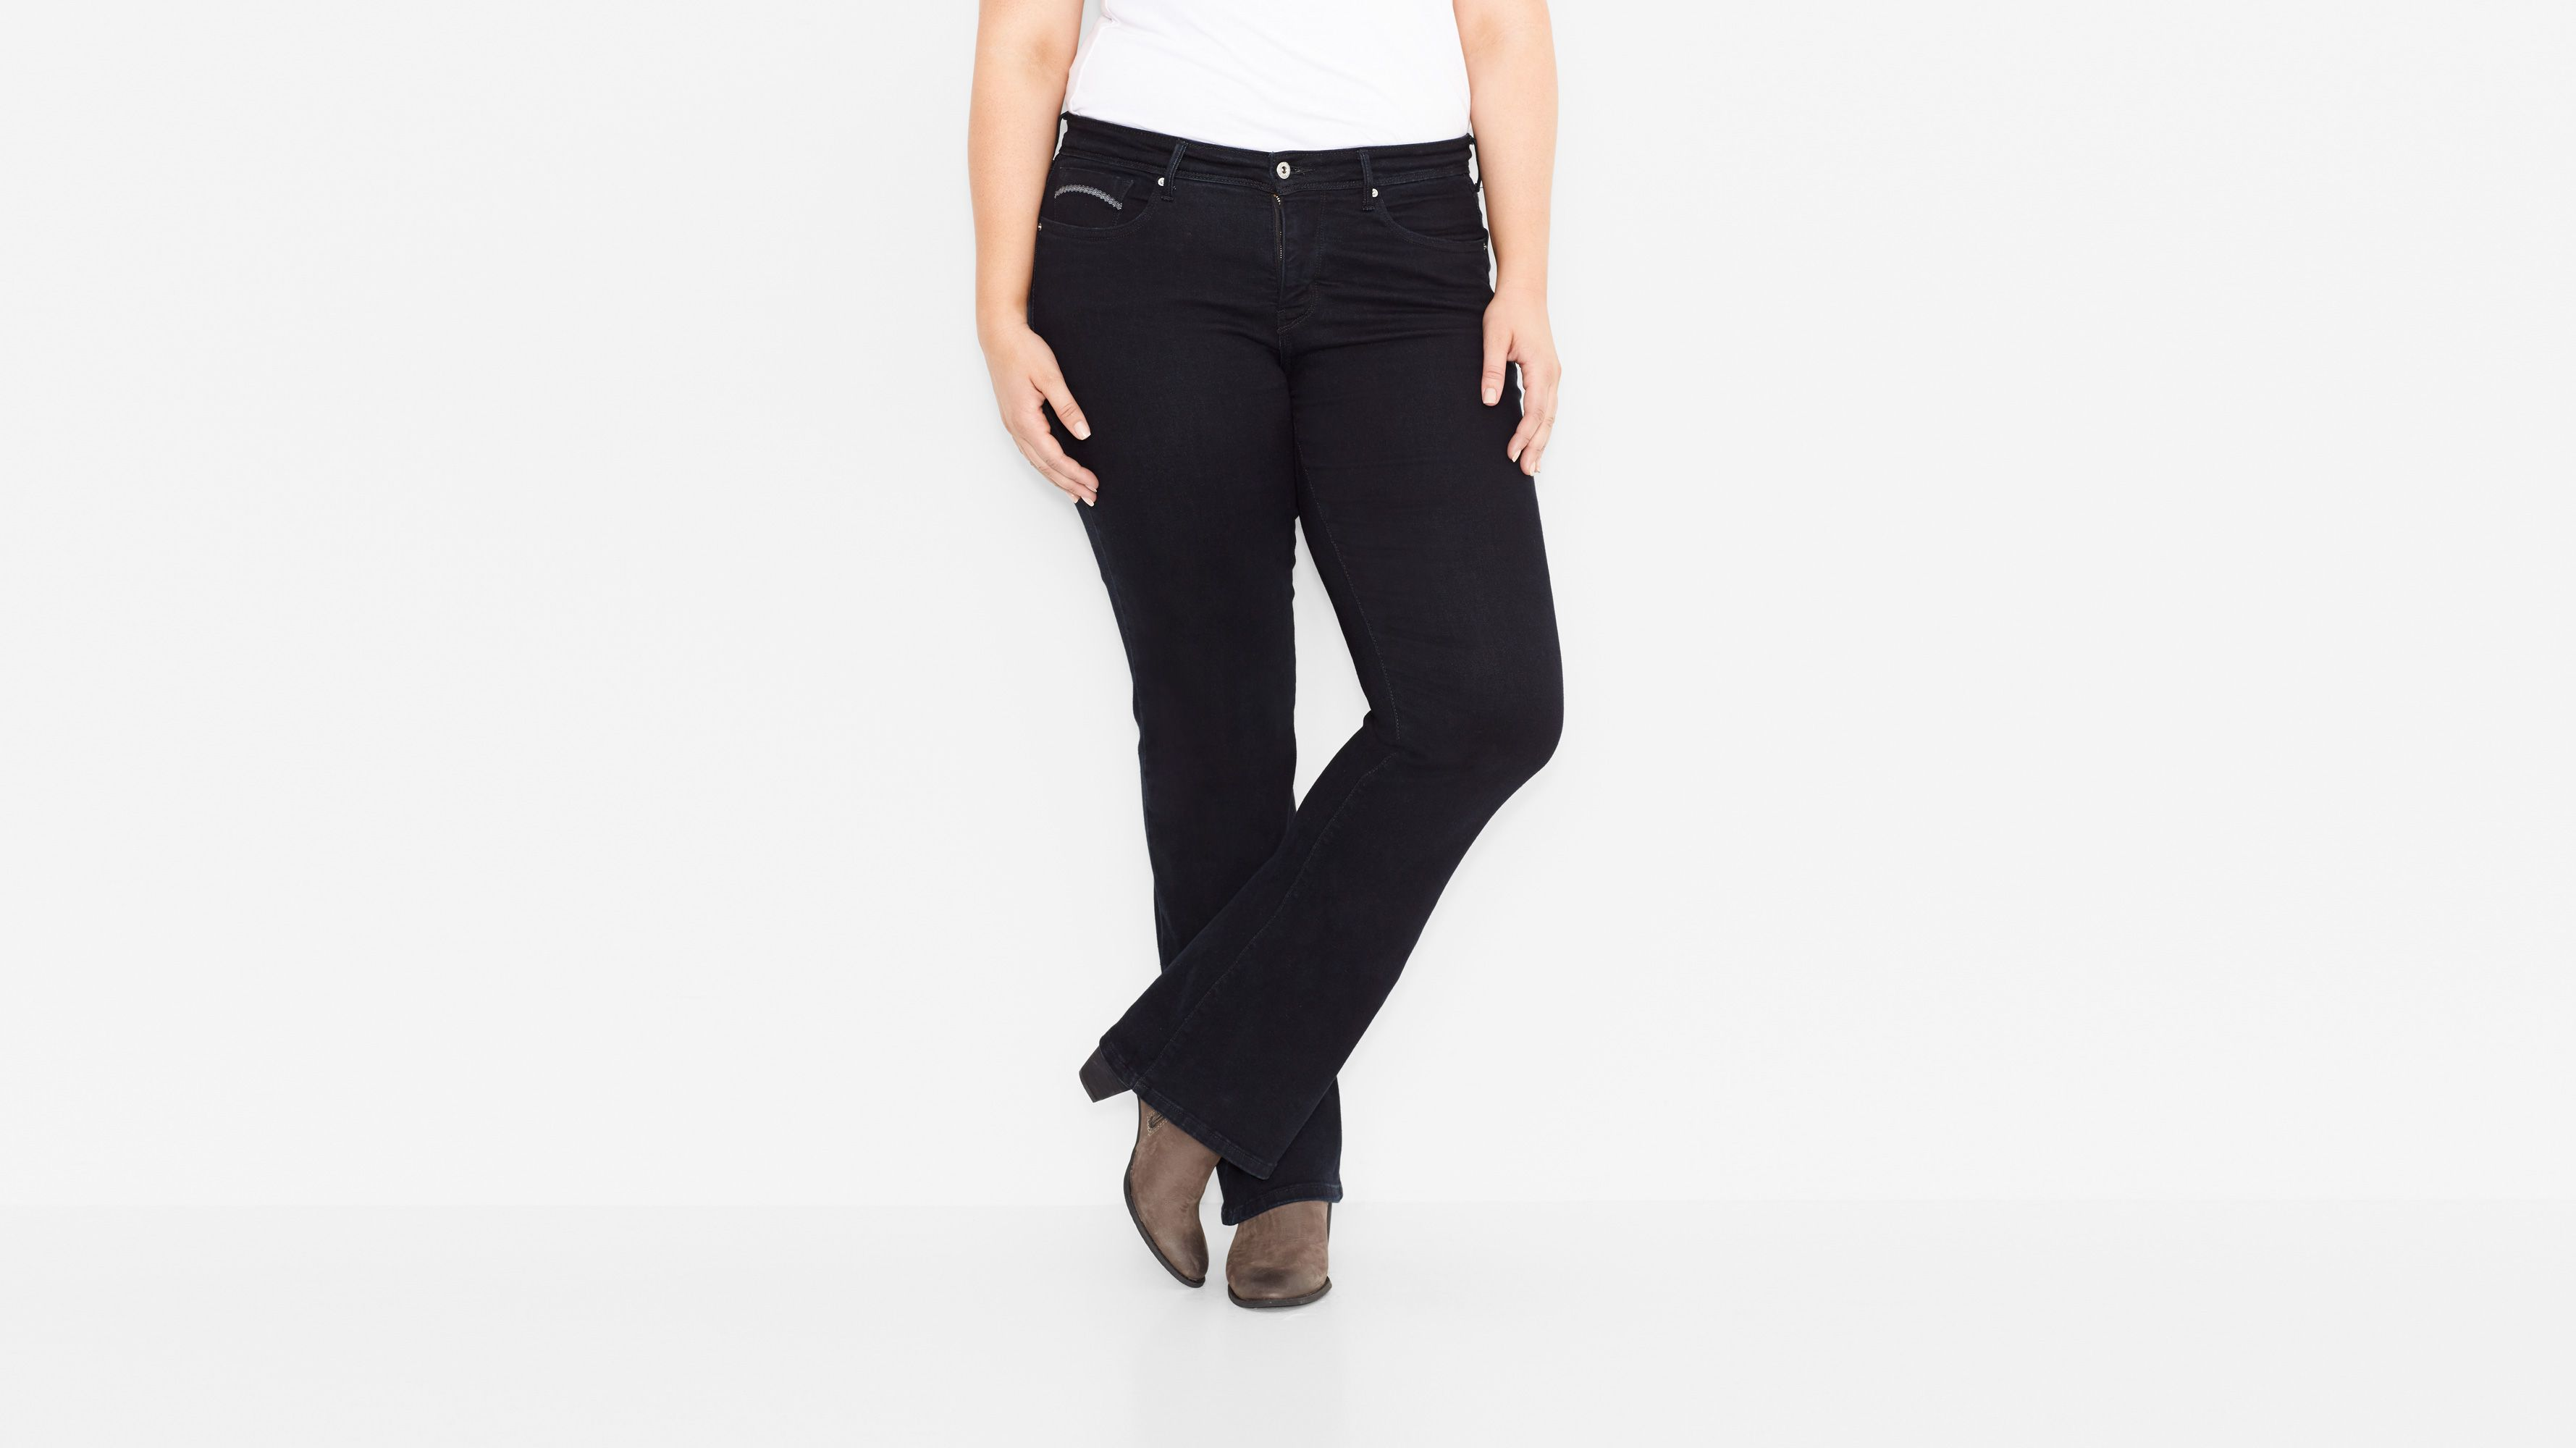 512™ Perfectly Shaping Boot Cut Jeans (Plus) - Black